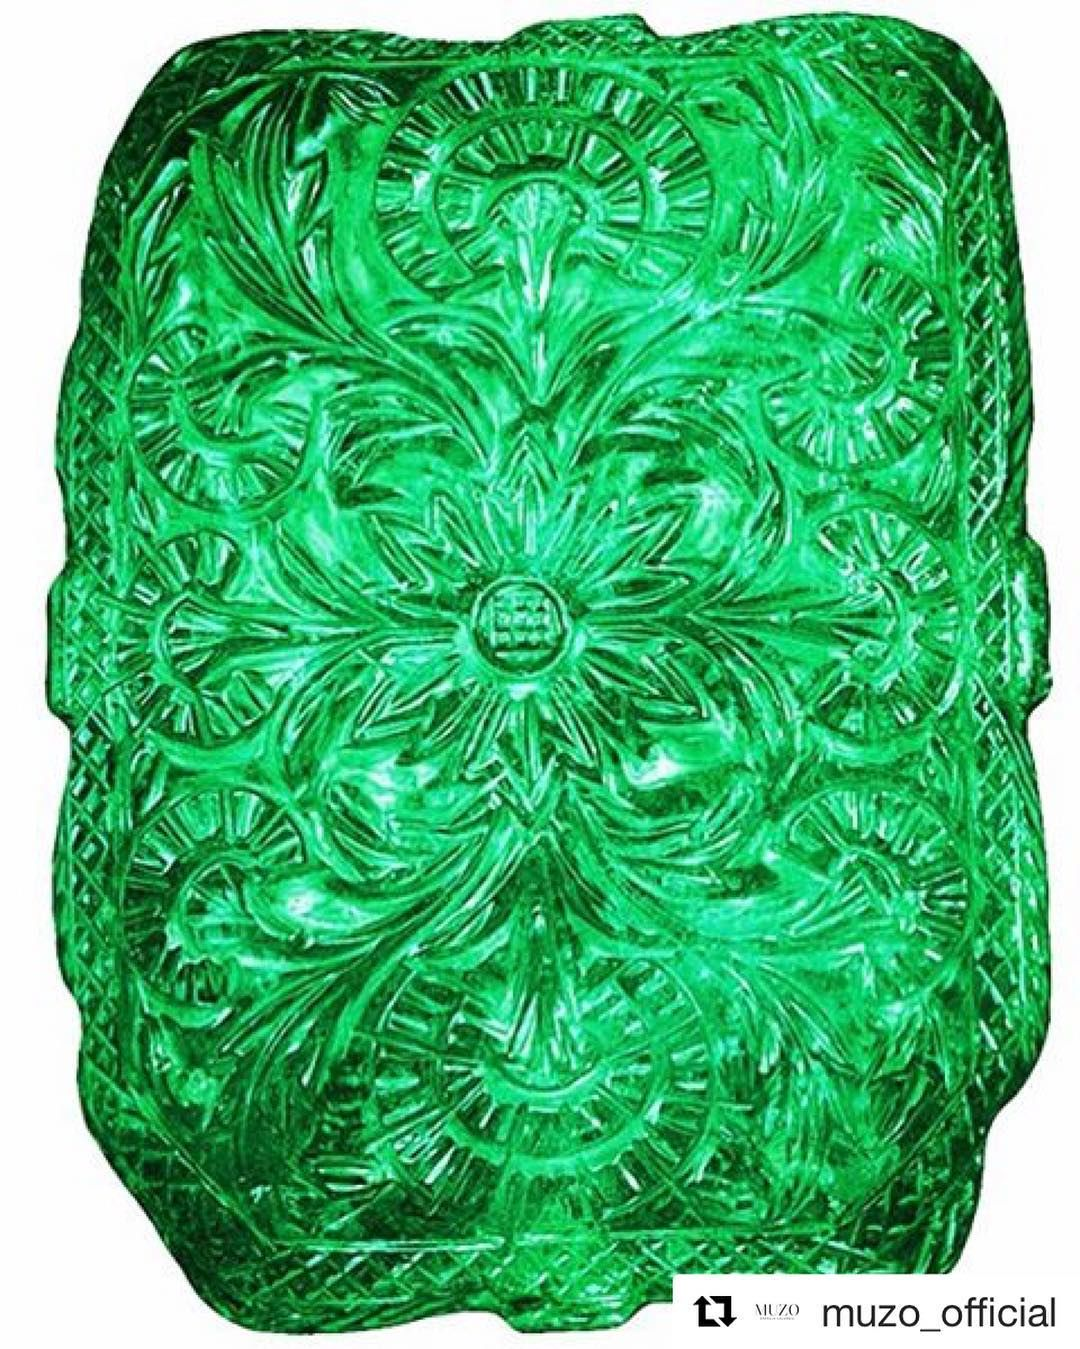 The magnificent Mughal Emerald is one of the largest in the world ...